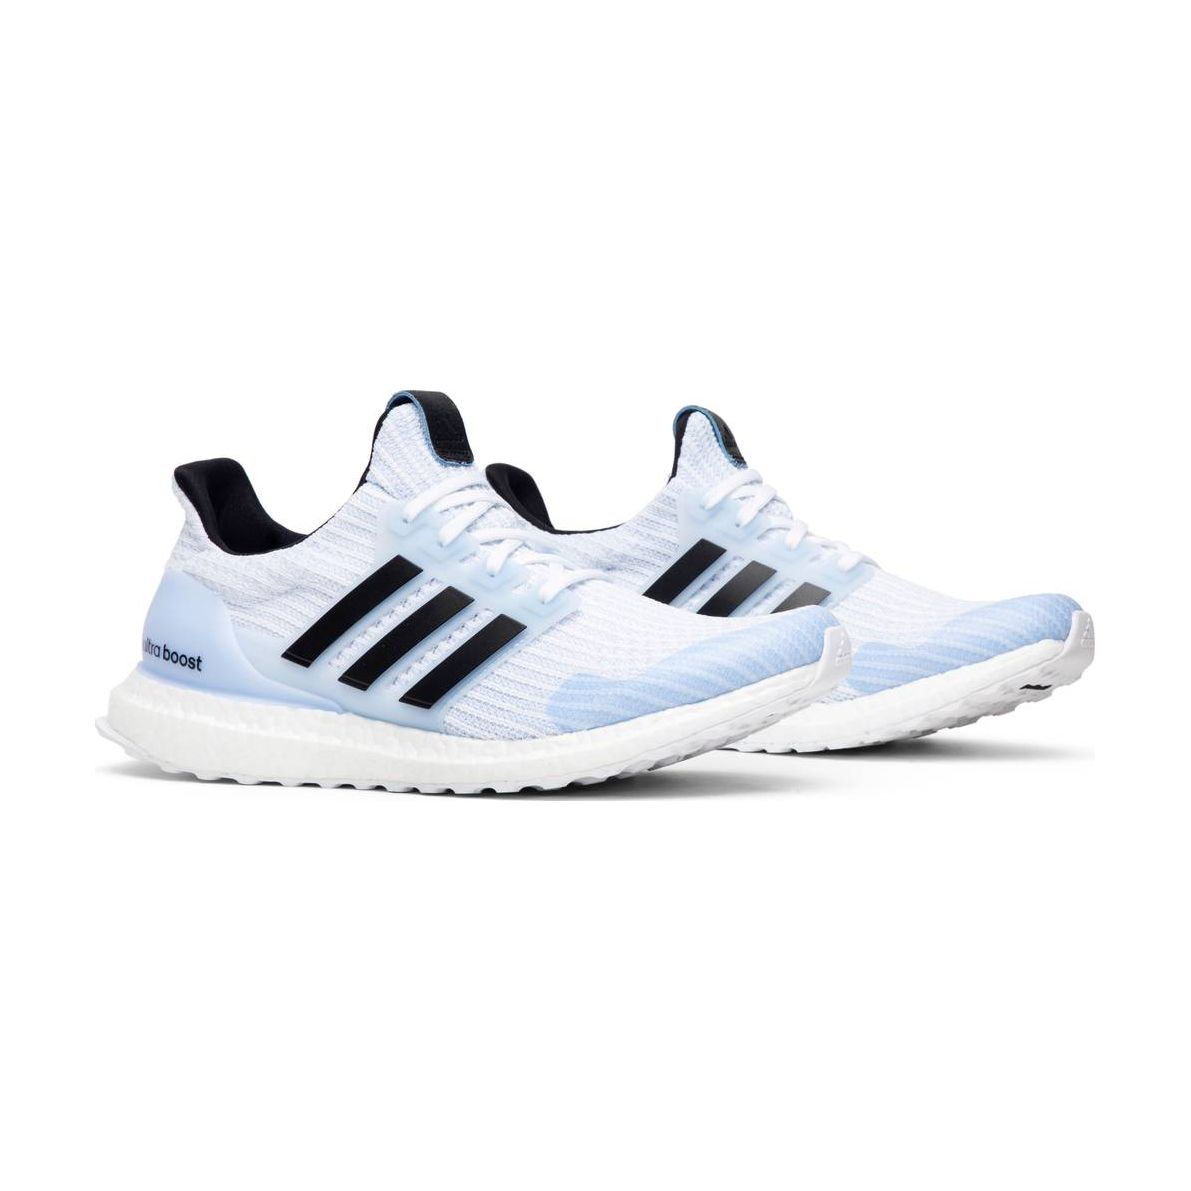 sale retailer 7f5f0 22a0e Game Of Thrones x adidas UltraBoost 4.0 'White Walkers' EE3708